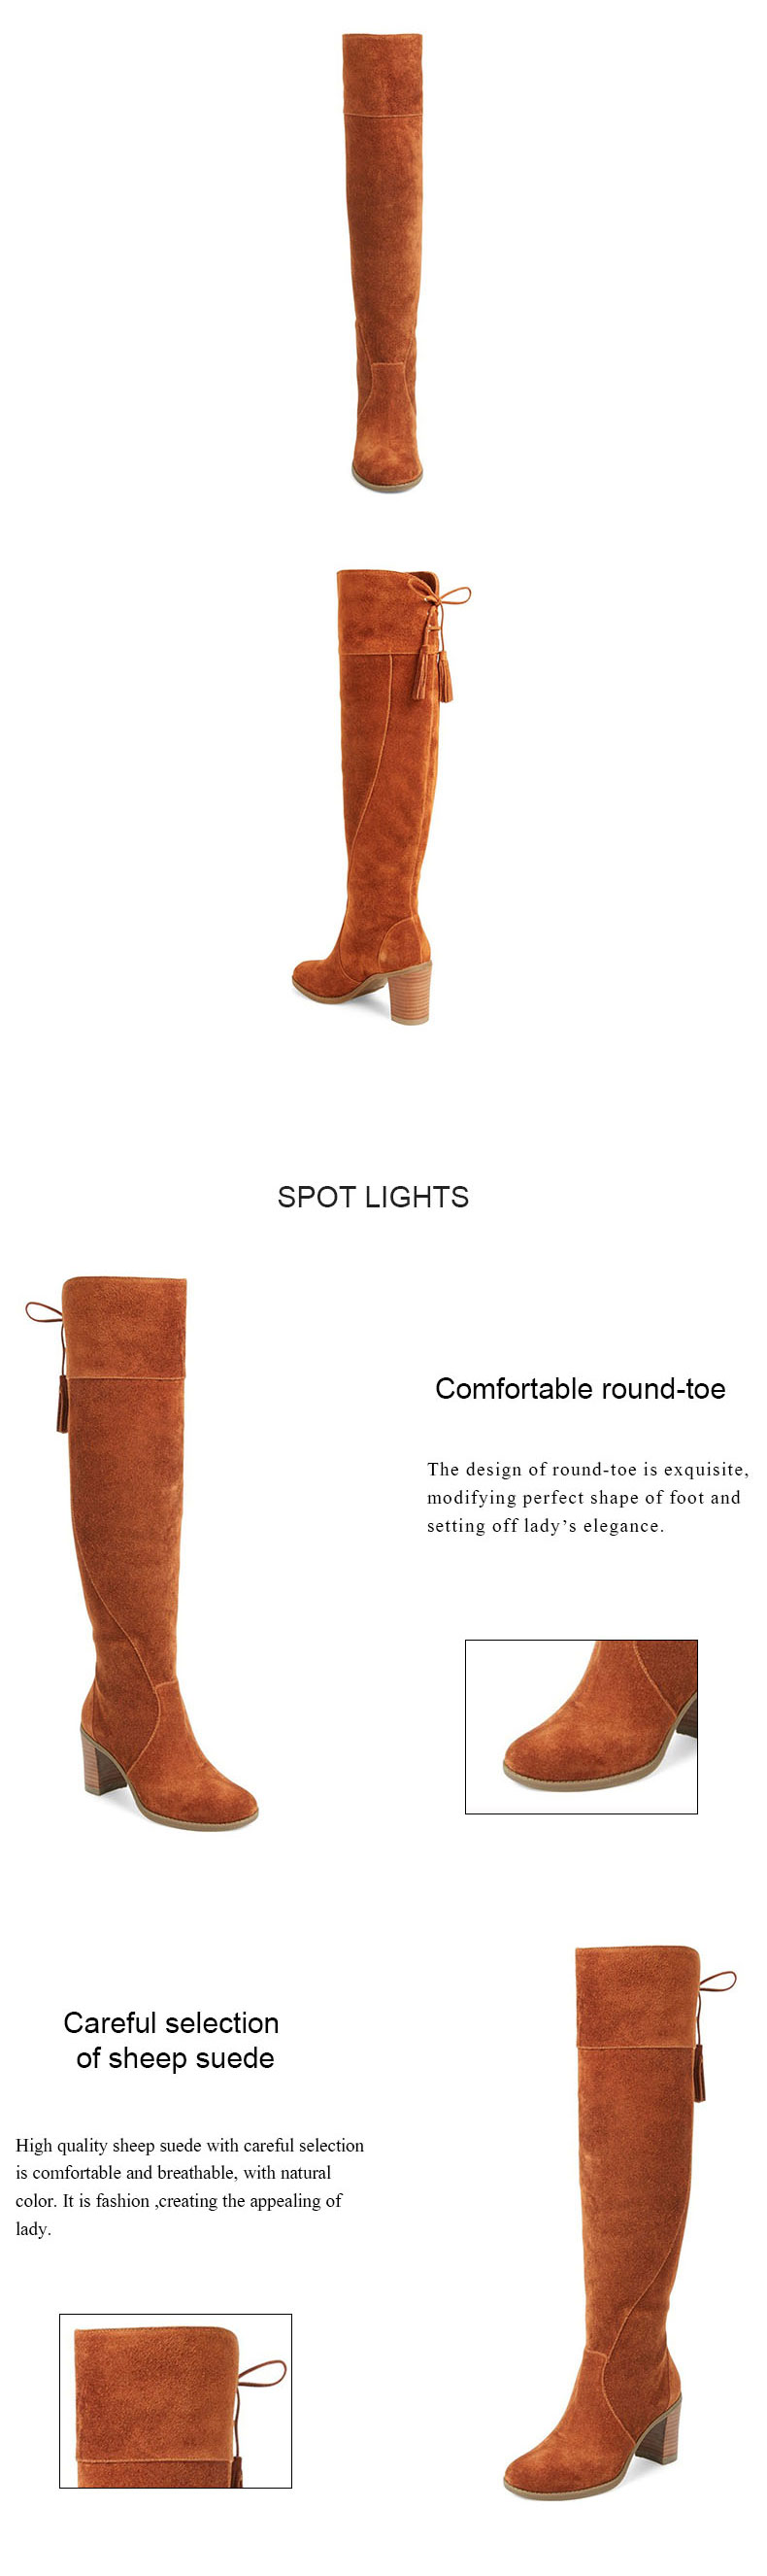 color src moda buckle leather s calf knee women p select strap boots mid com comforter kitten comfortable top prod high pu